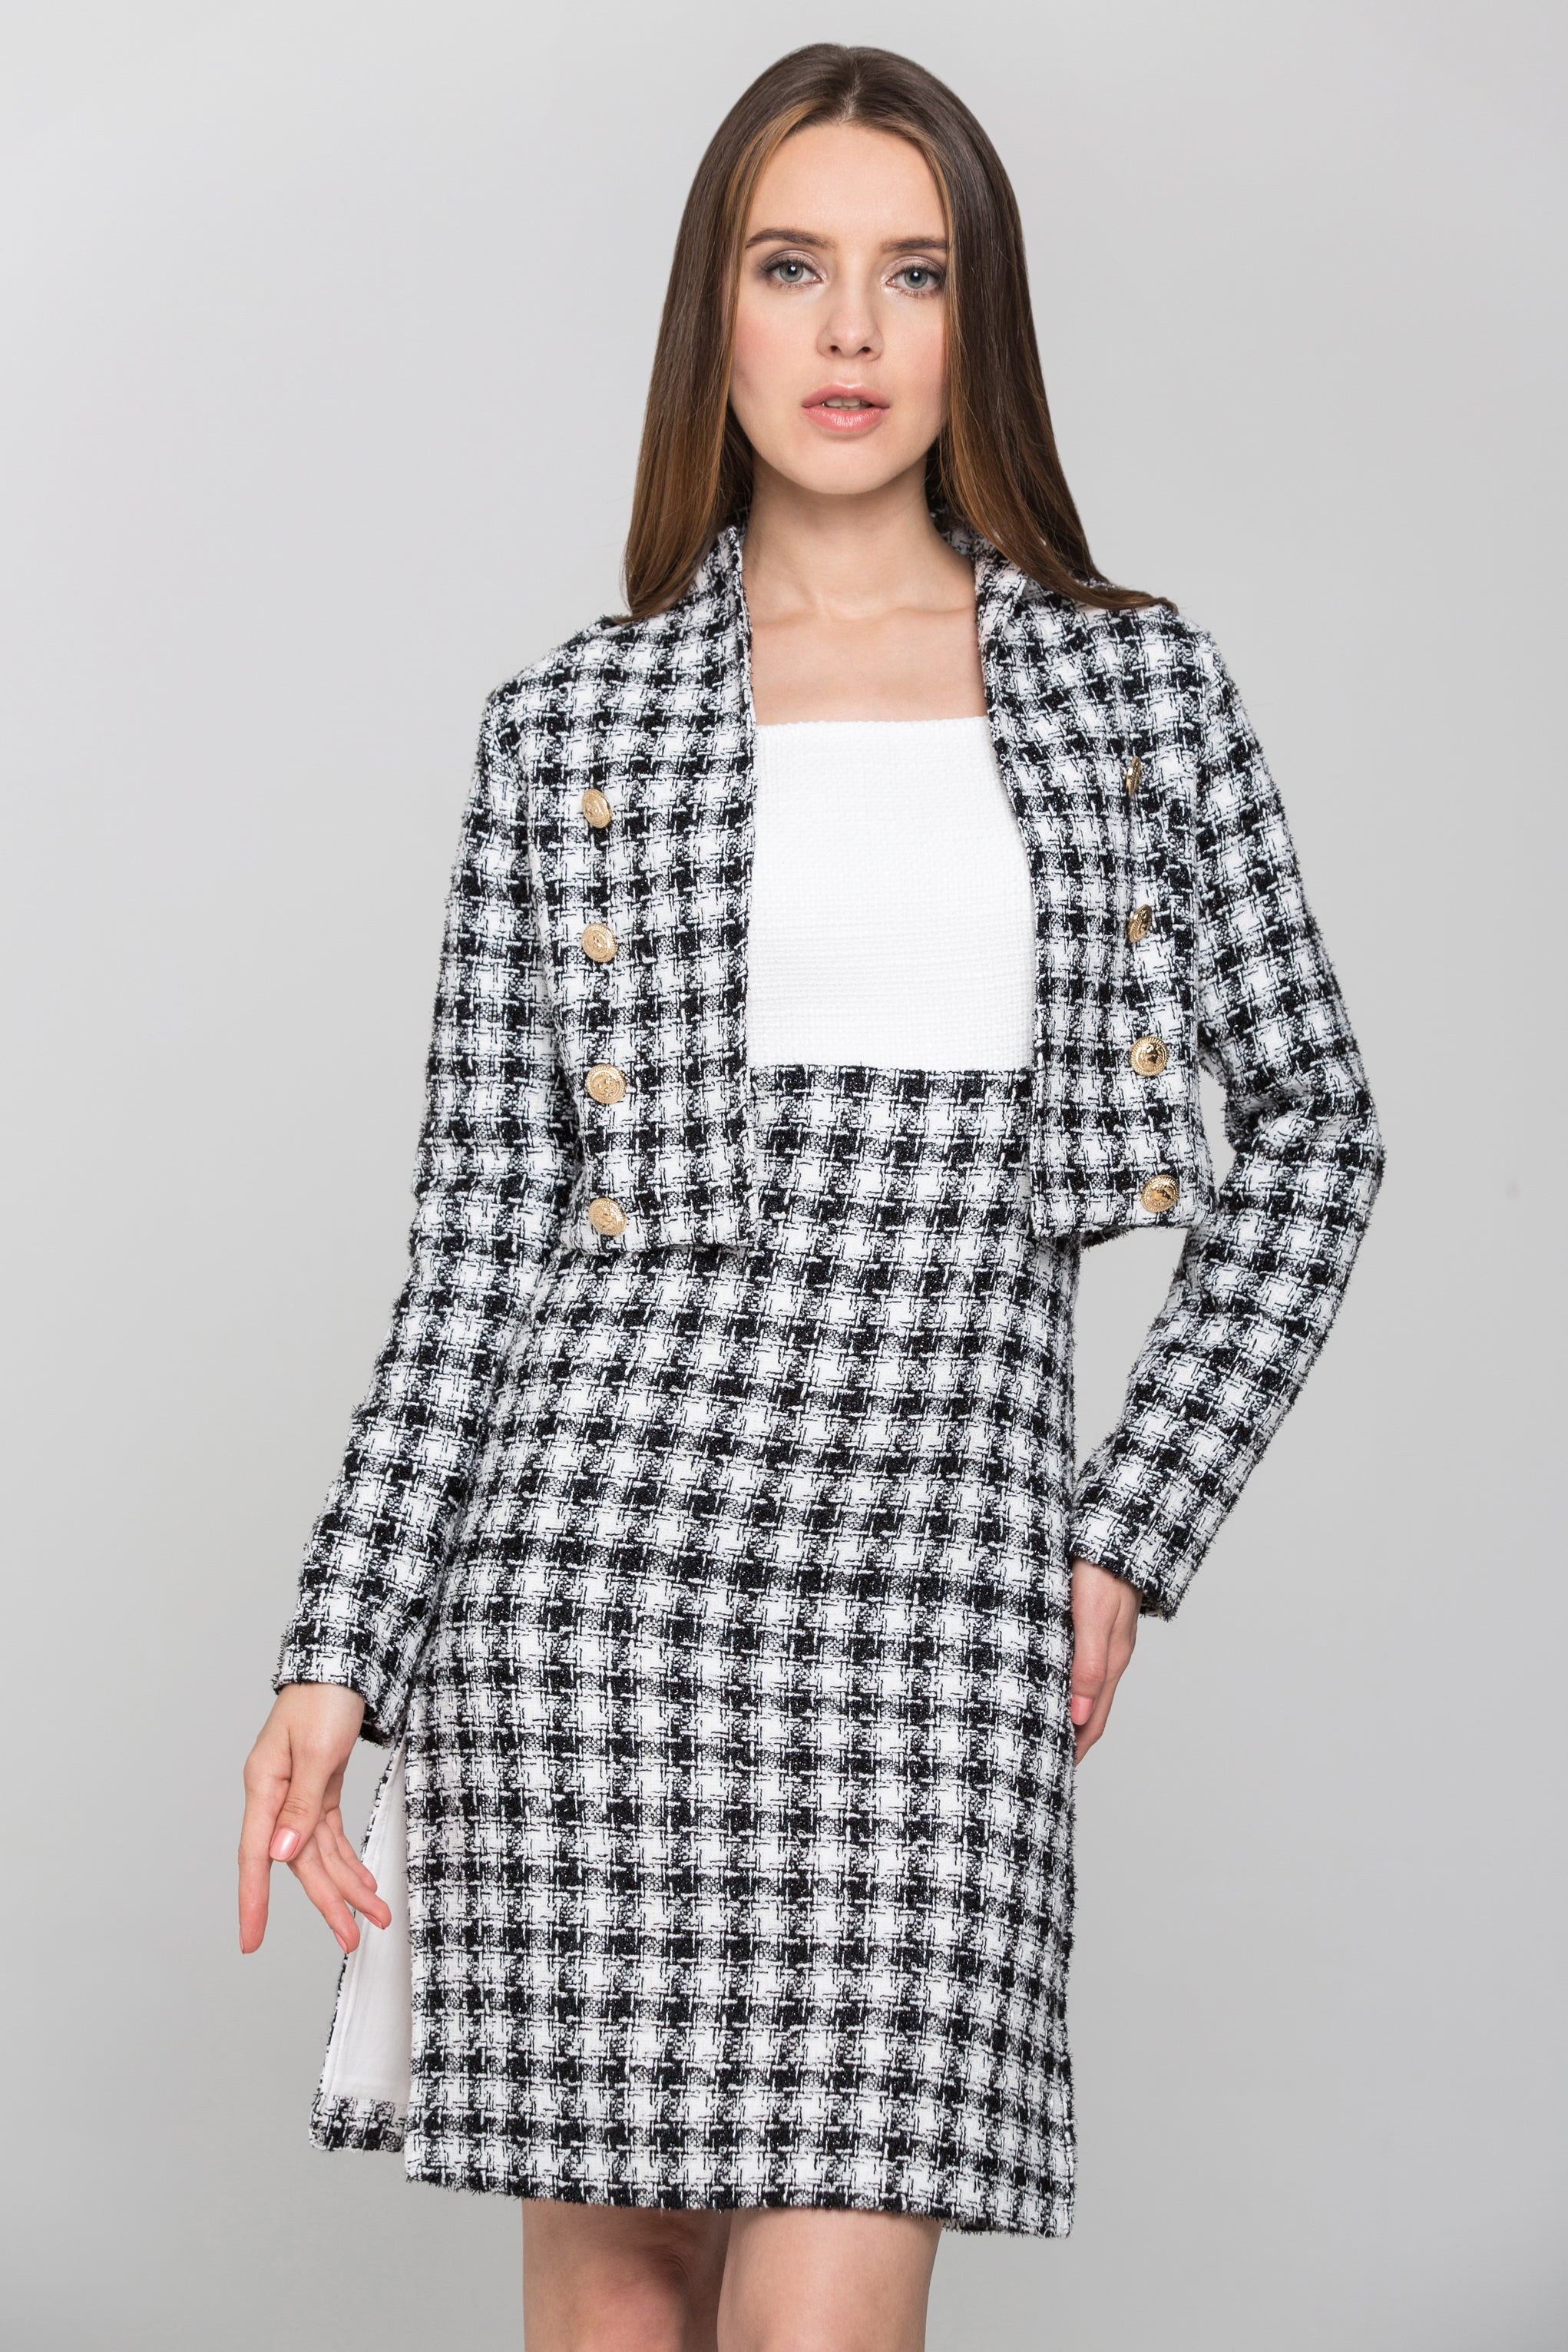 627cd247a7 Black and White Check Tweed Dress and Blazer Set – OwnTheLooks